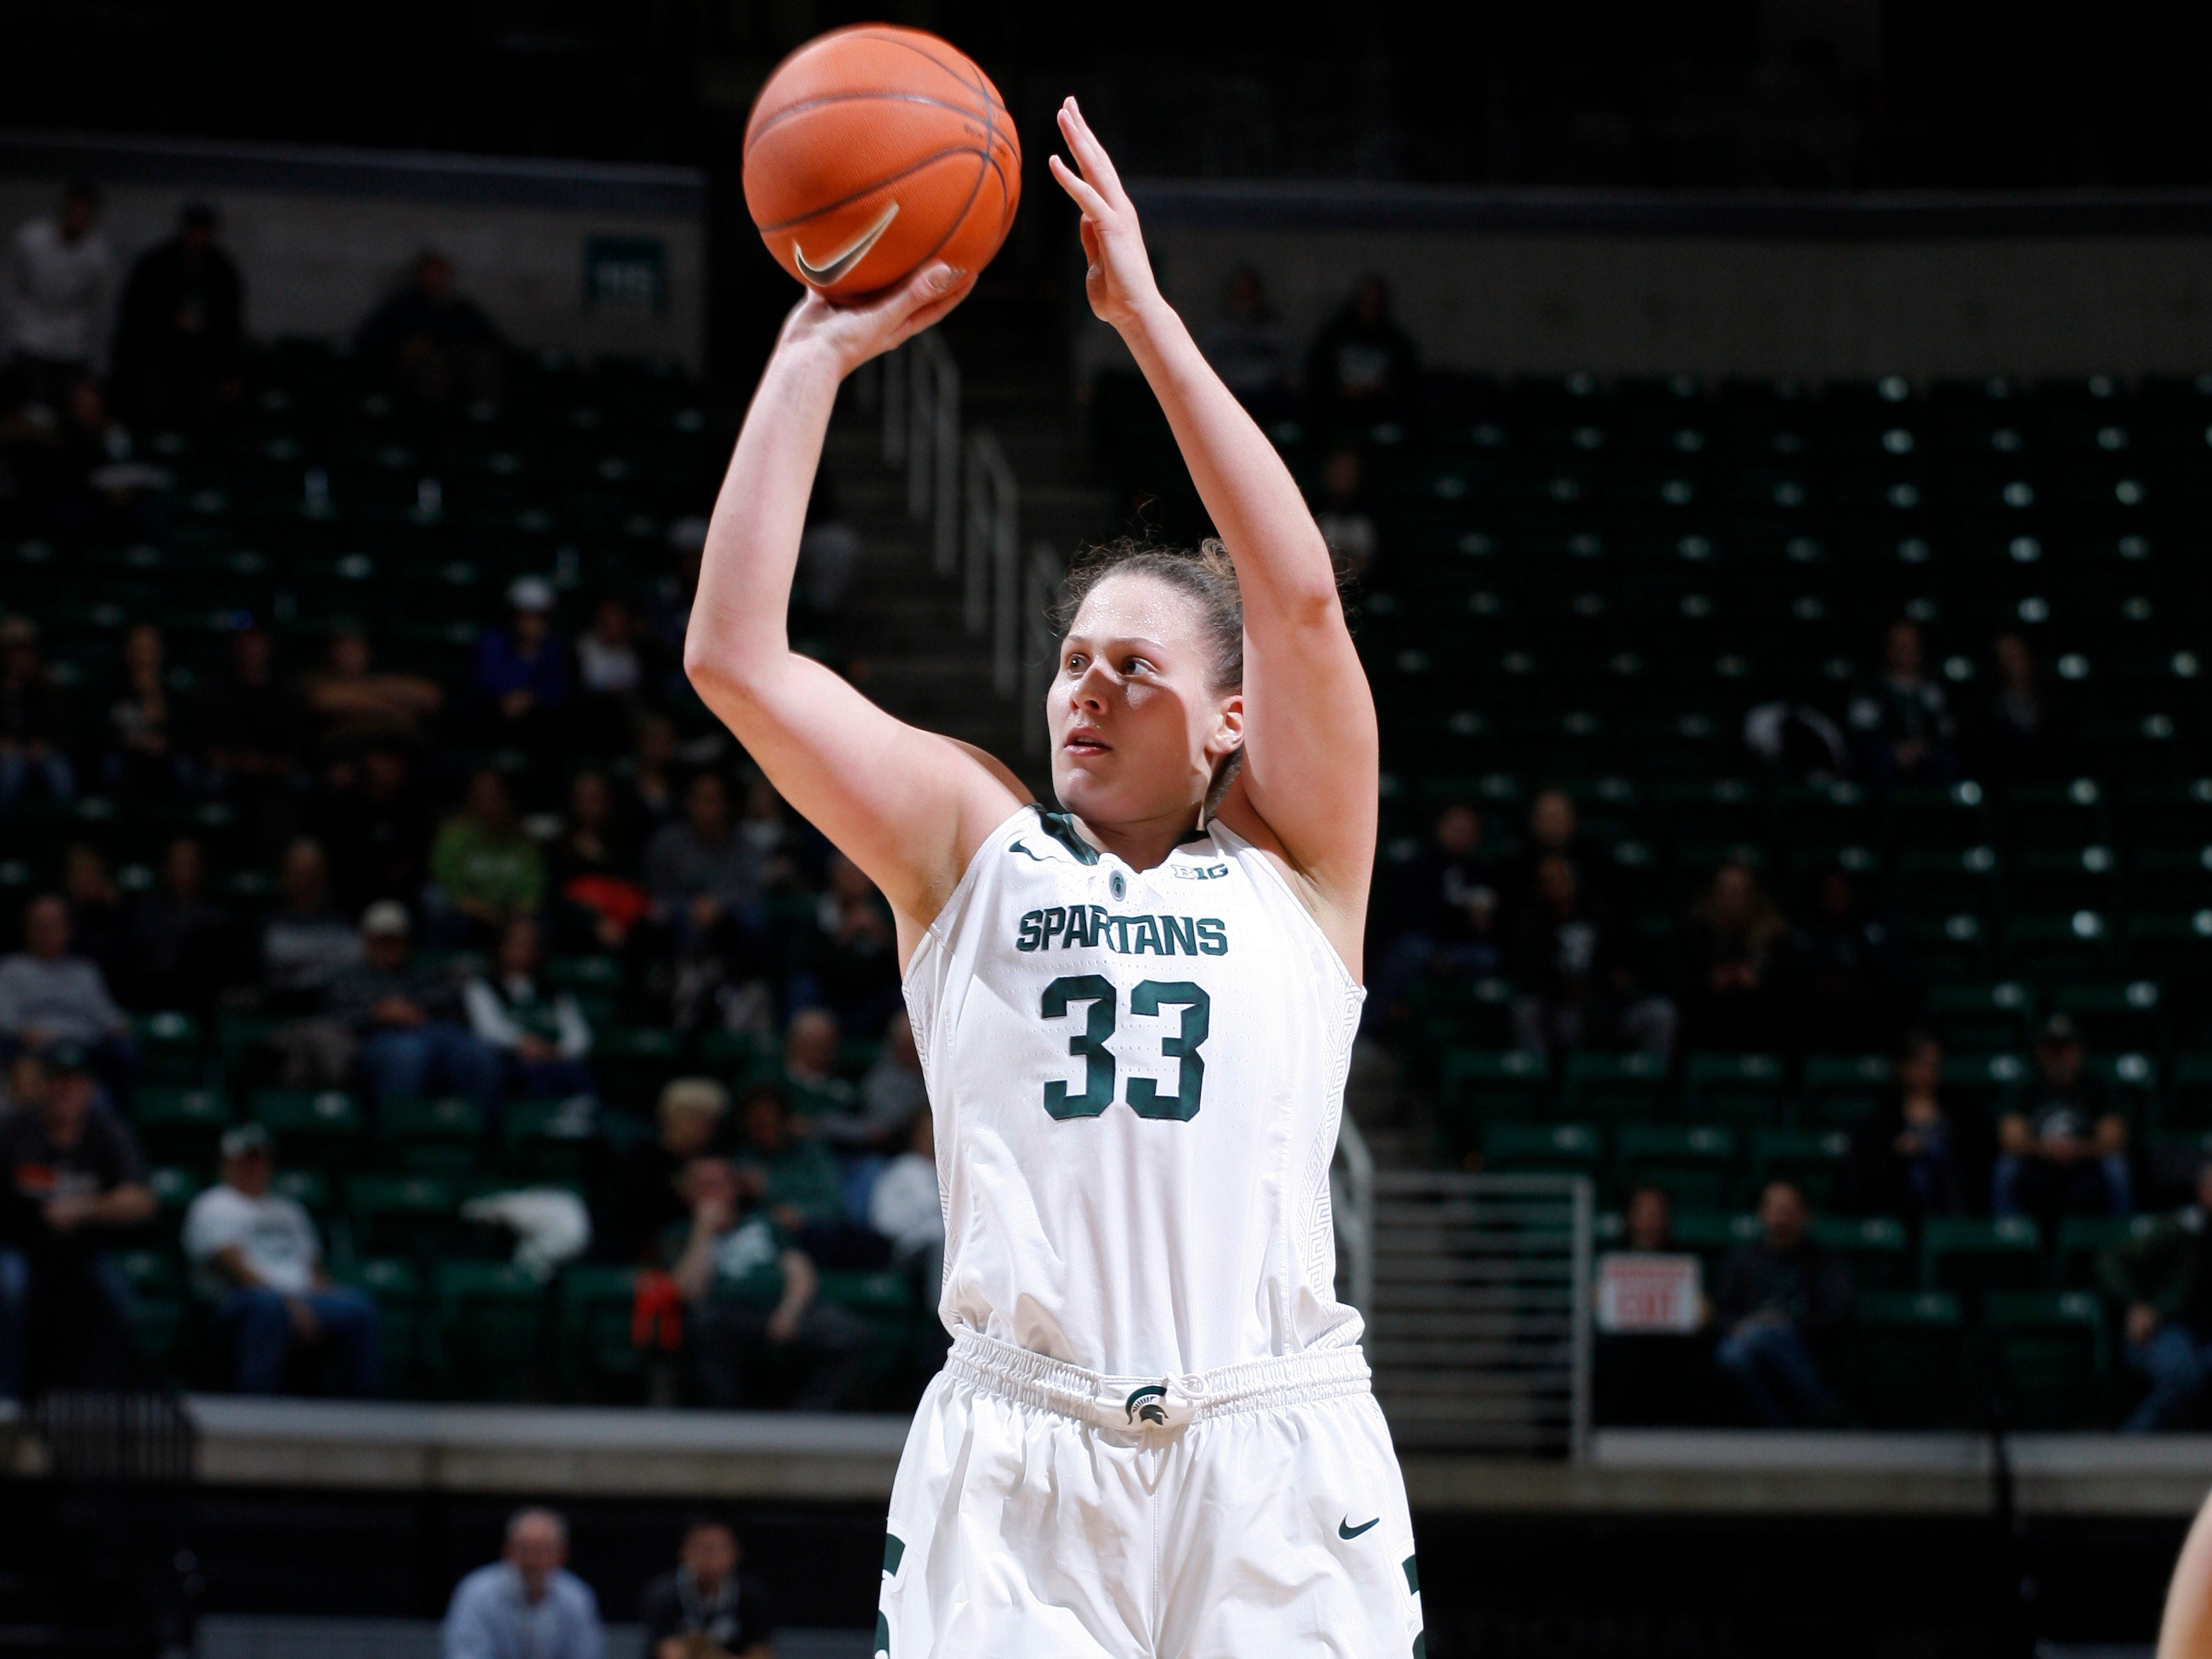 Michigan State's Jenna Allen shoots against Hillsdale, Thursday, Nov. 1, 2018, in East Lansing, Mich.